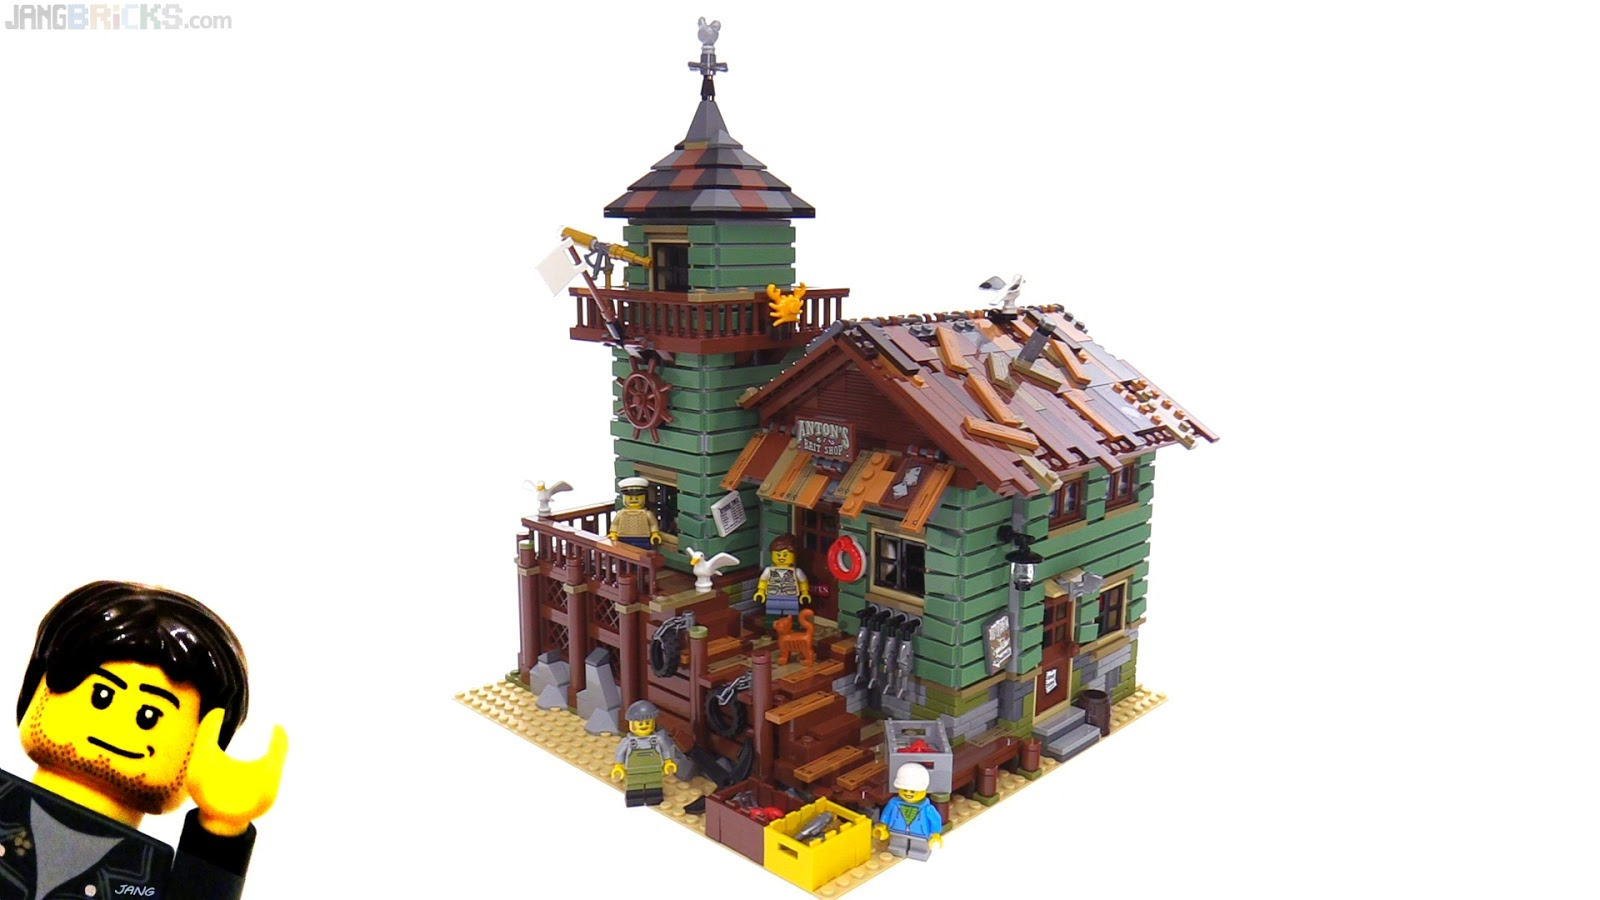 Lego ideas old fishing store review 21310 for Lego ideas old fishing store